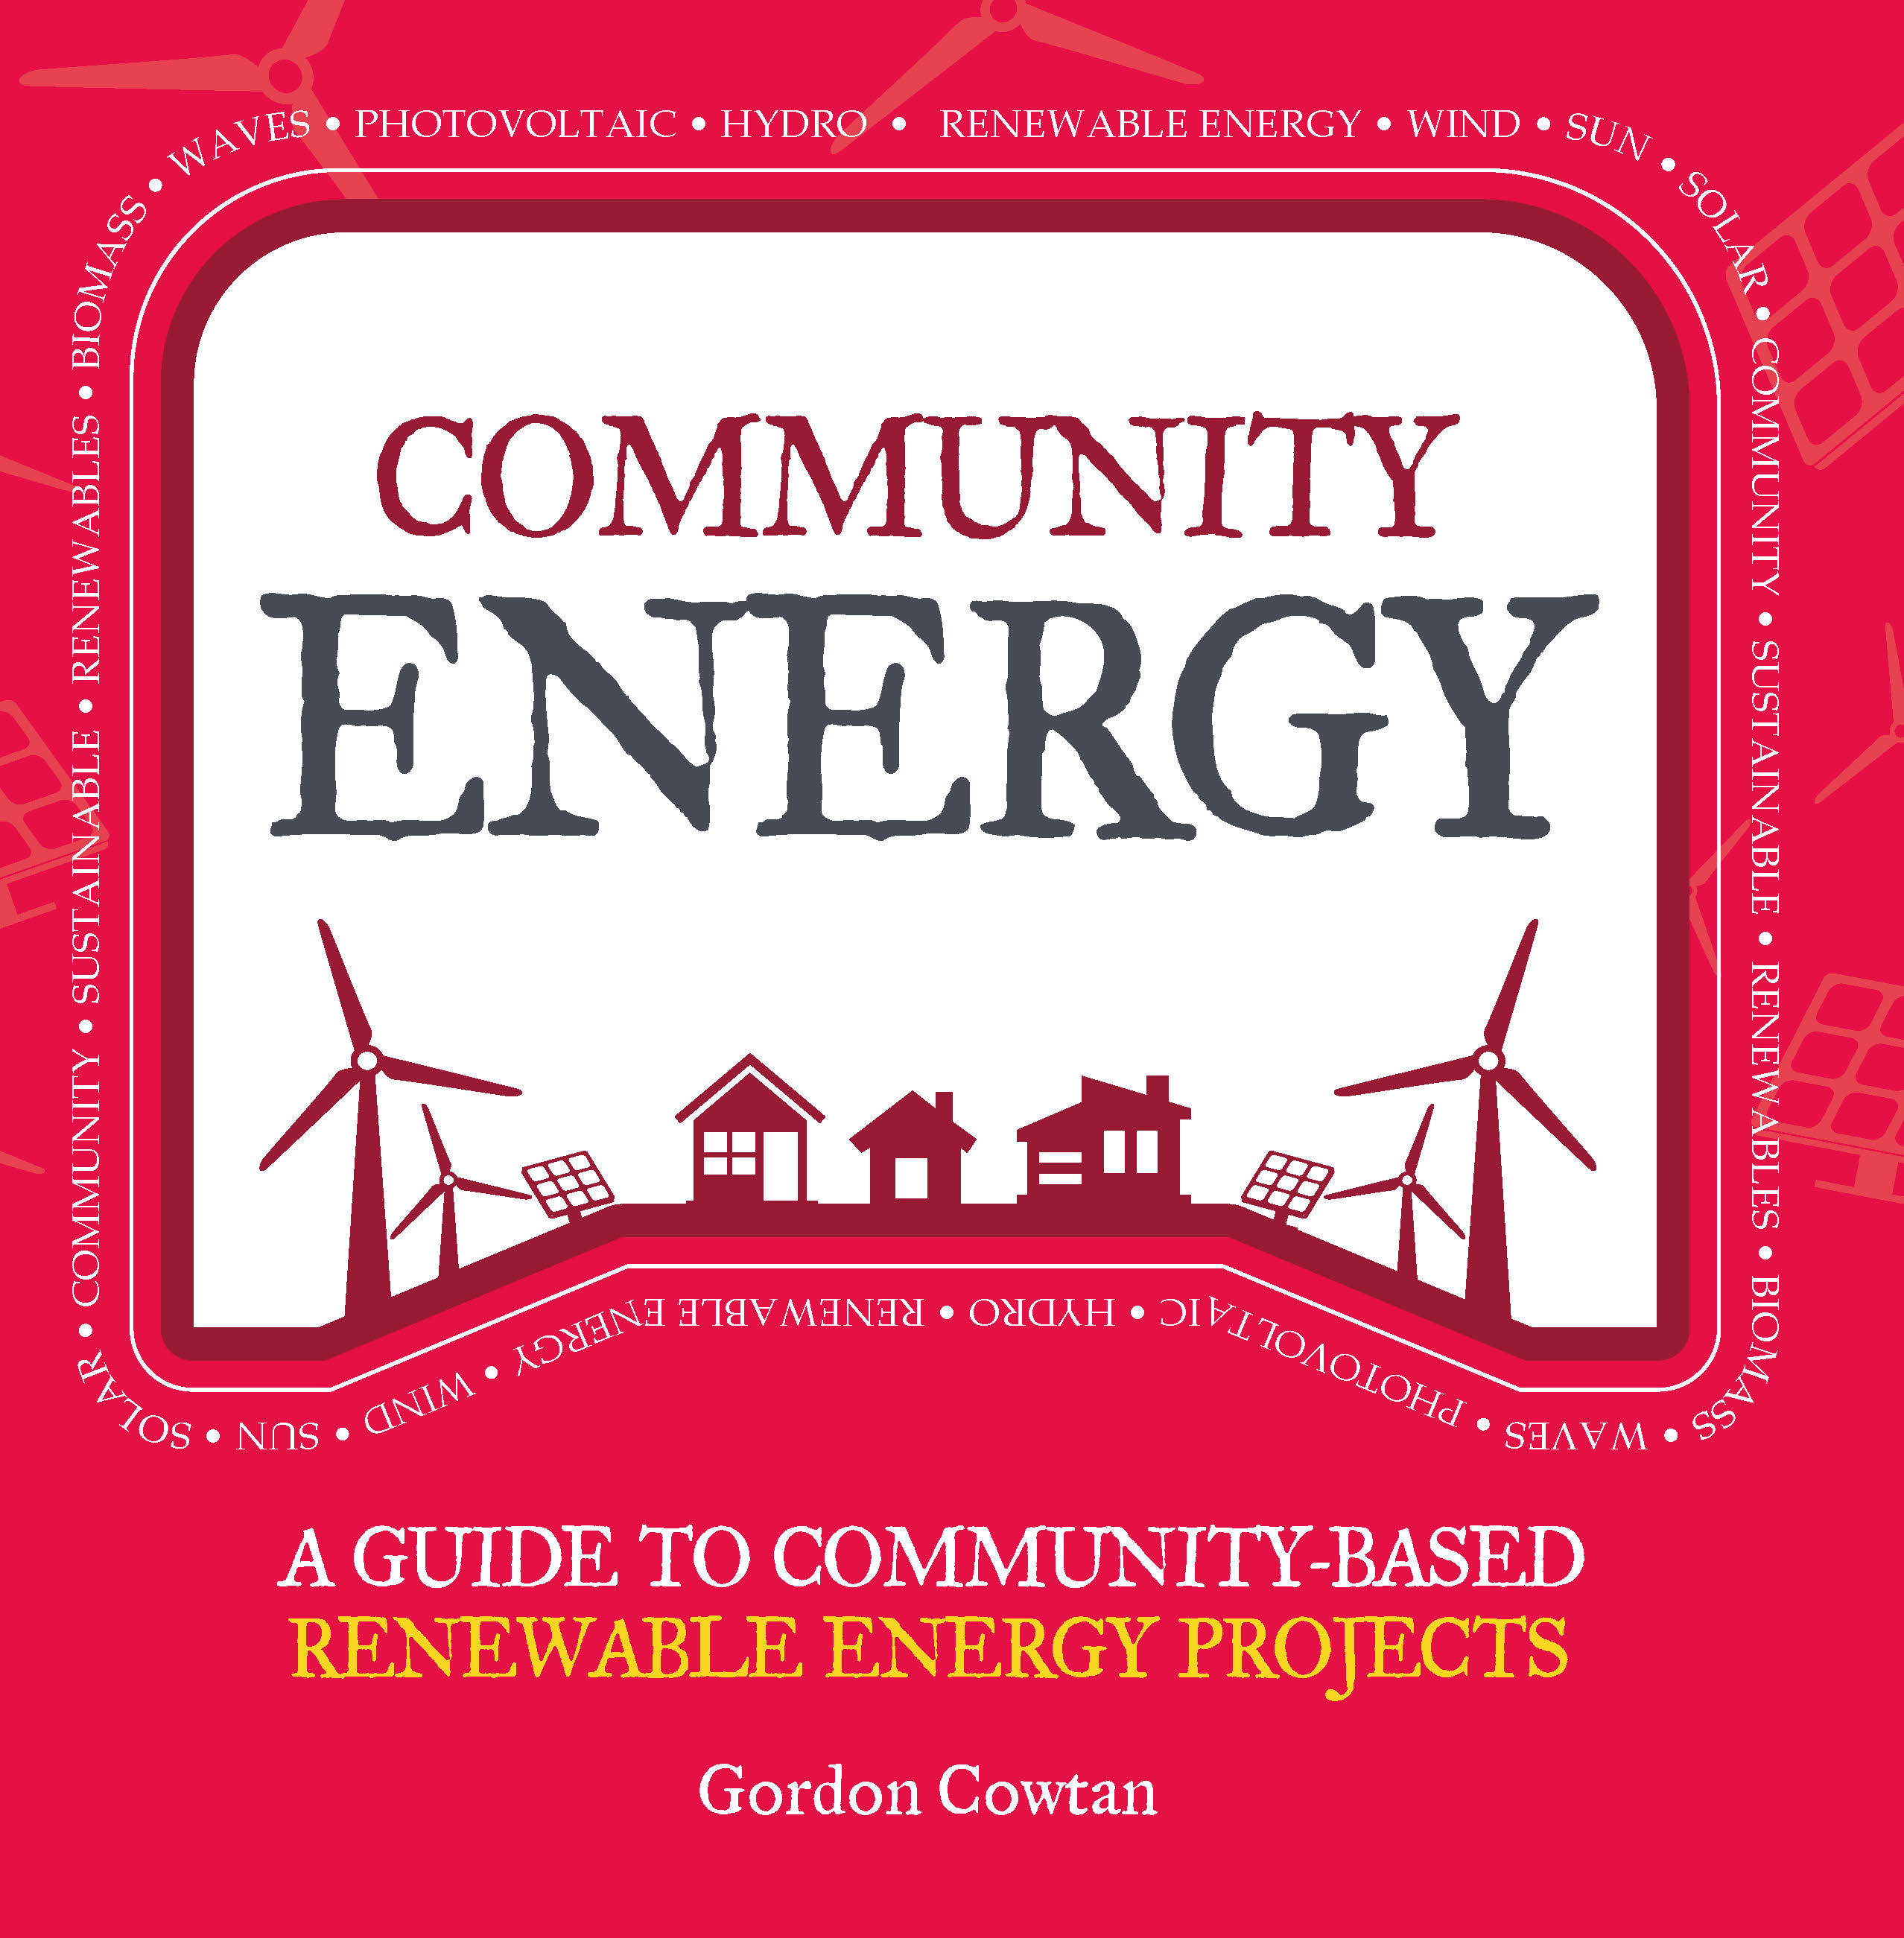 Community Energy A guide to community-based renewable energy projects